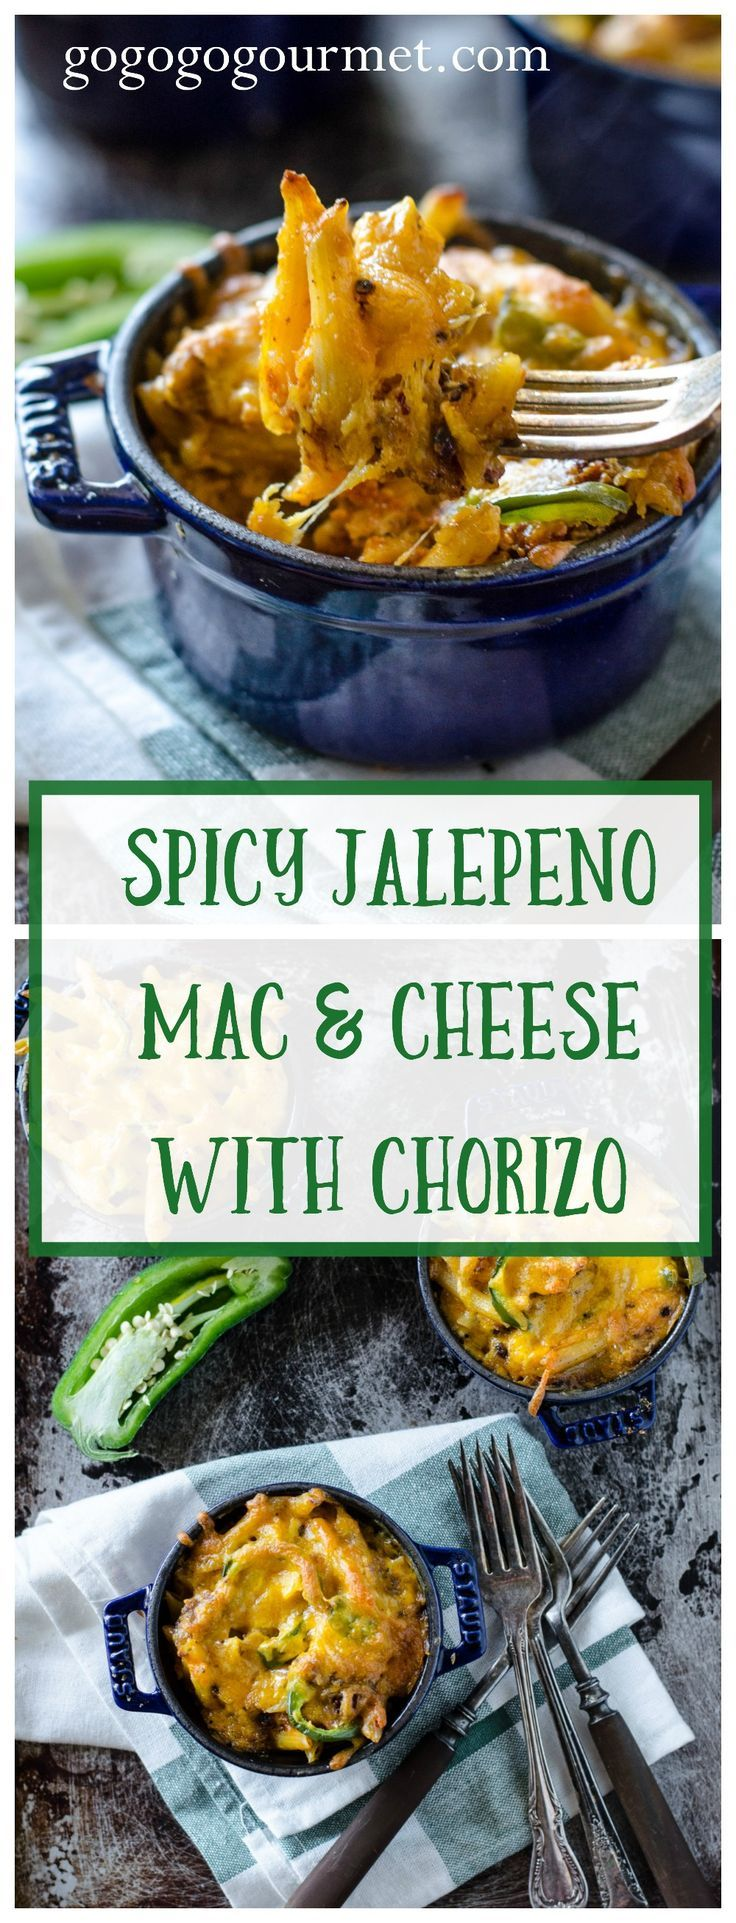 This mac and cheese packs a spicy punch- sure to be loved by every jalepeno…